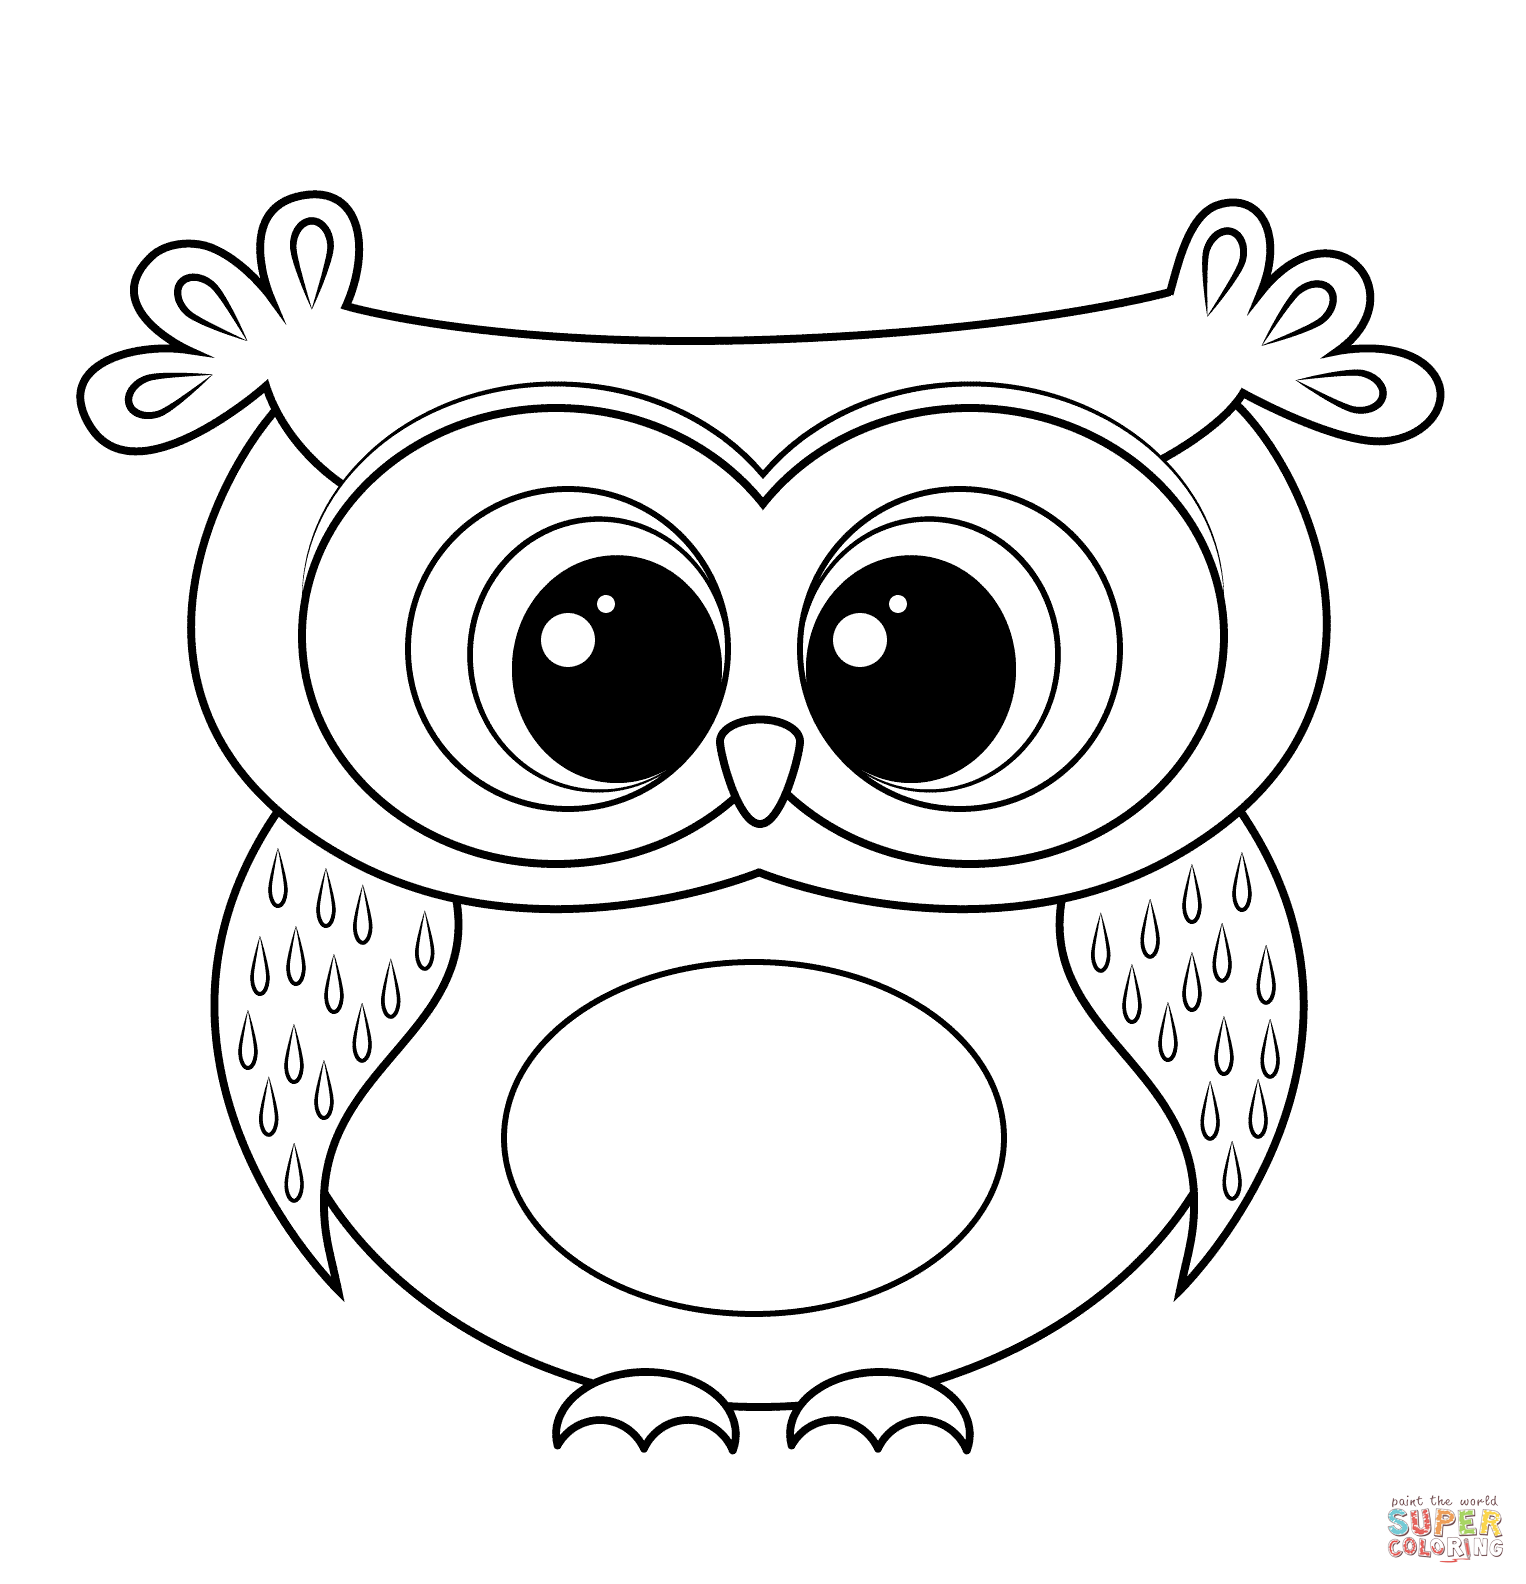 pictures of owls to color owl coloring pages for adults free detailed owl coloring color of owls to pictures